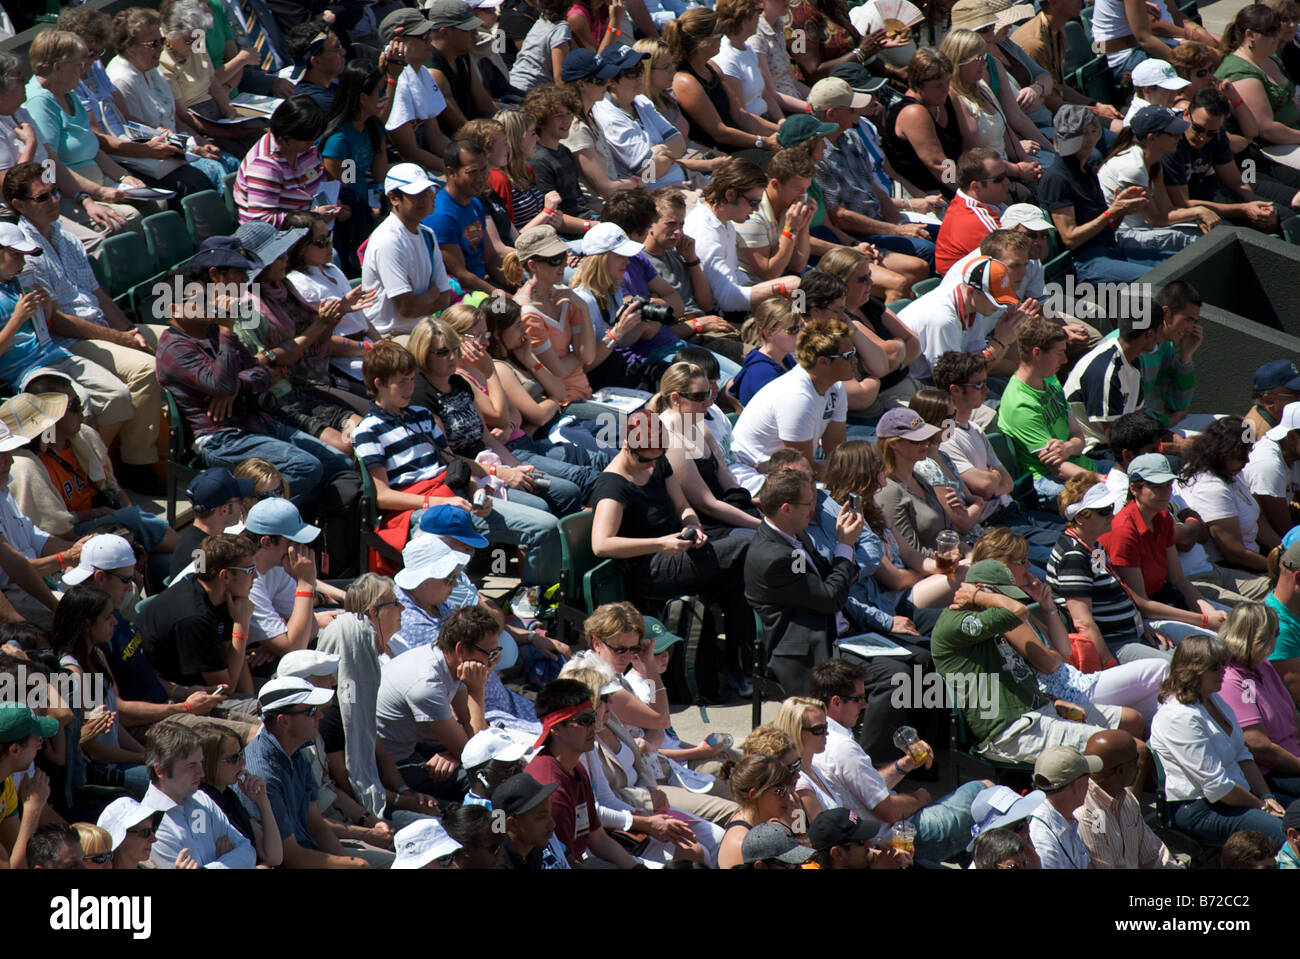 The crowd at Court number 1, Wimbledon 2008 - Stock Image